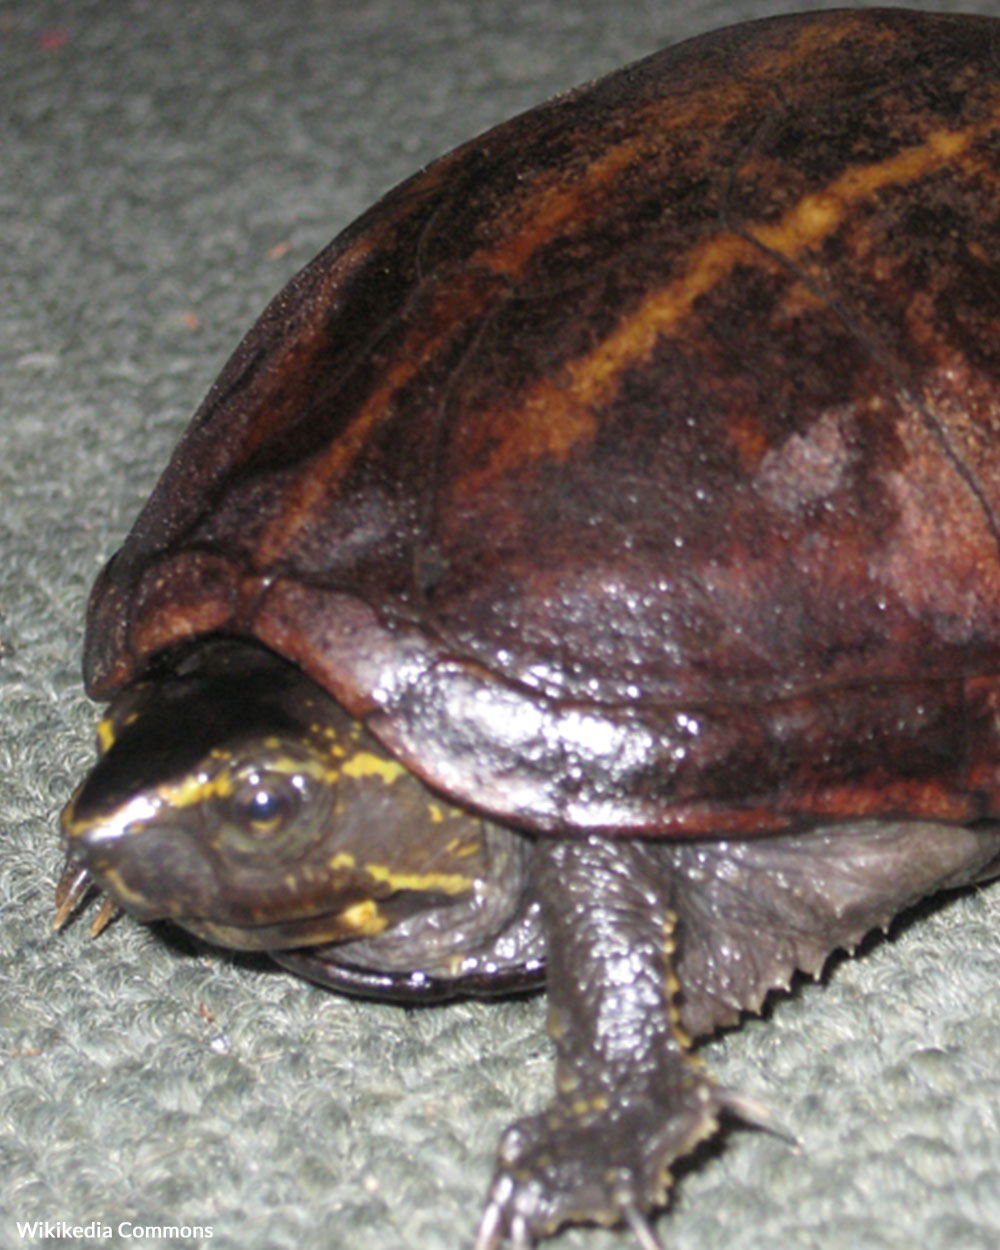 One of the turtle species the Lizard King's network collected was the three-striped mud turtle.